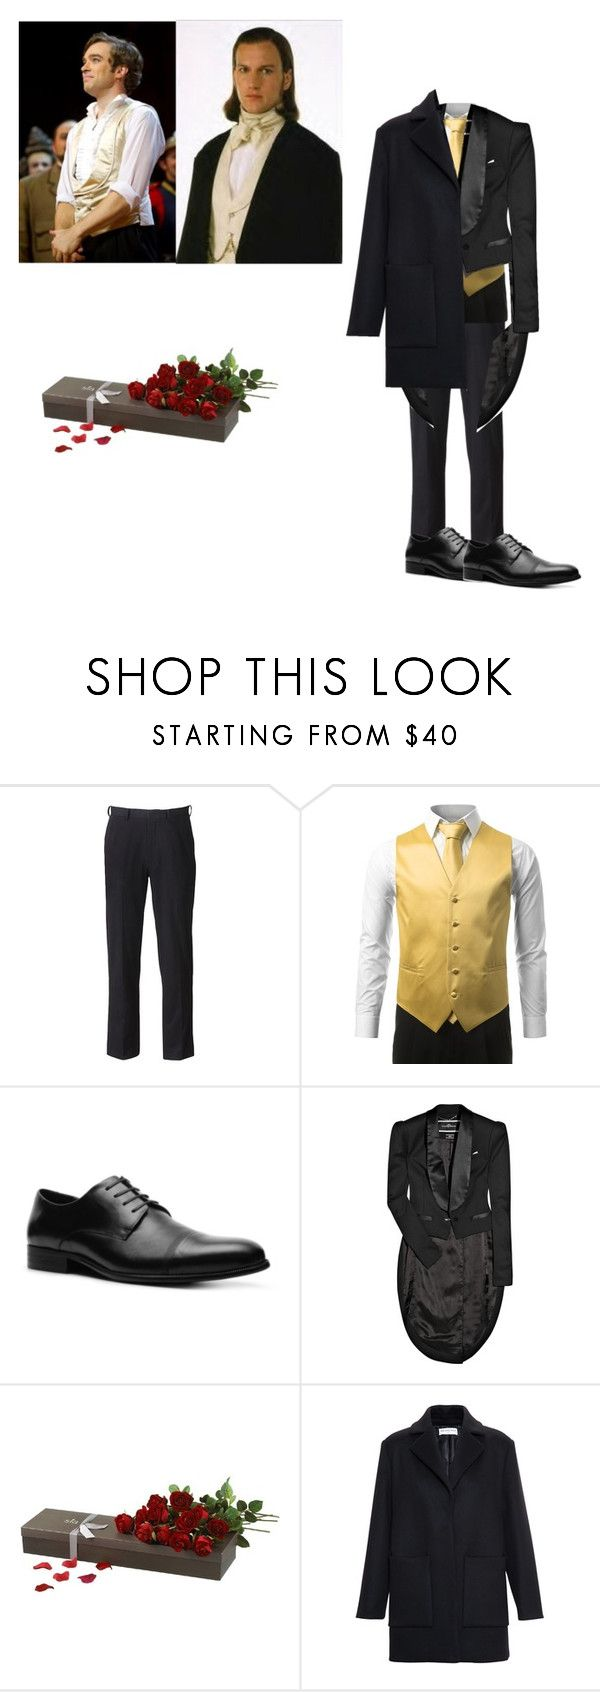 """""""Raoul Vicomte De Chagne"""" by wolf-warrior ❤ liked on Polyvore featuring Raoul, Van Heusen, Kenneth Cole, By Malene Birger, Sia and Balenciaga"""